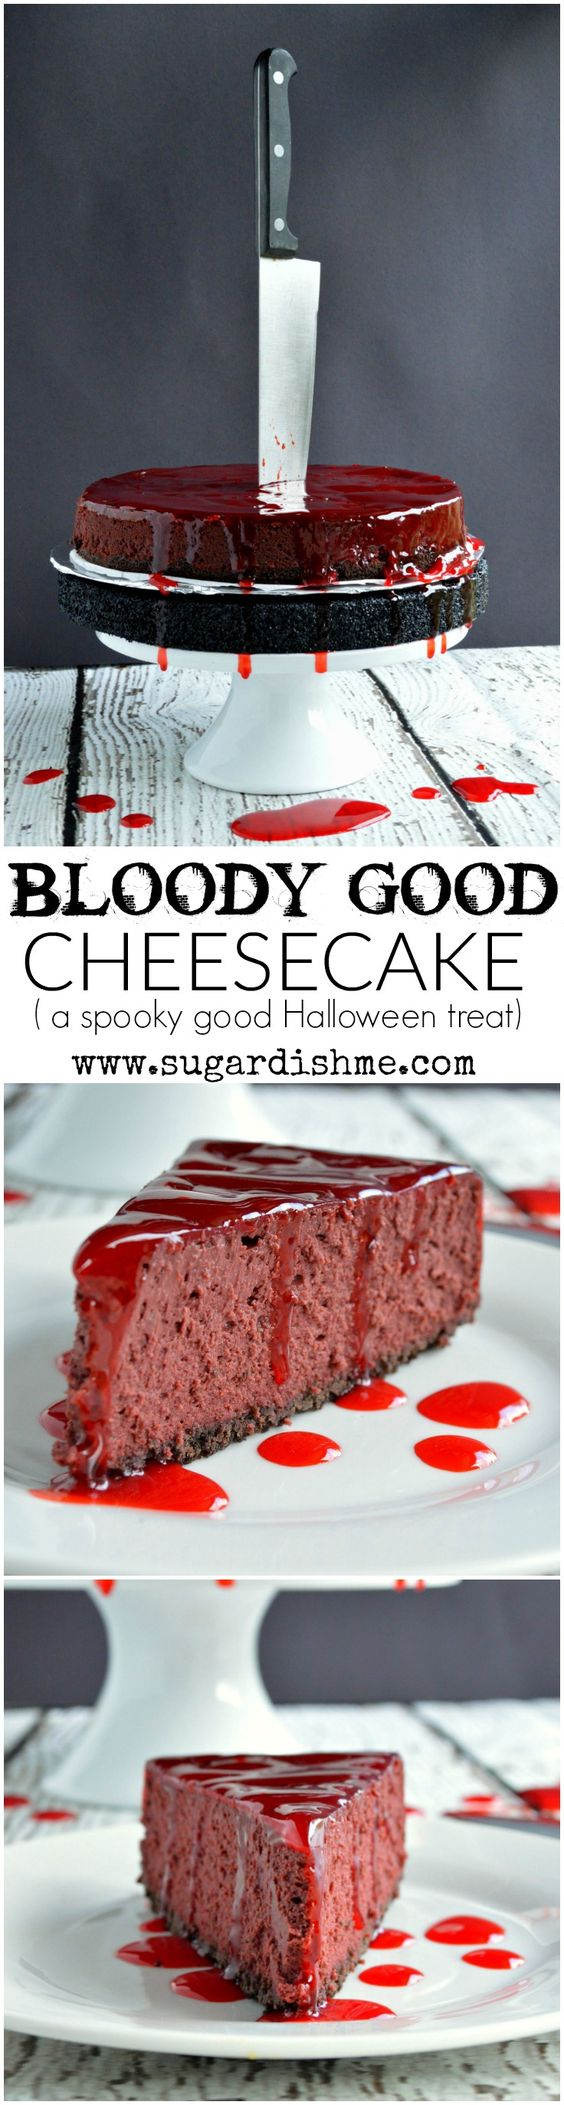 Bloody Good Cheesecake Halloween Food Tutorial - Spiros